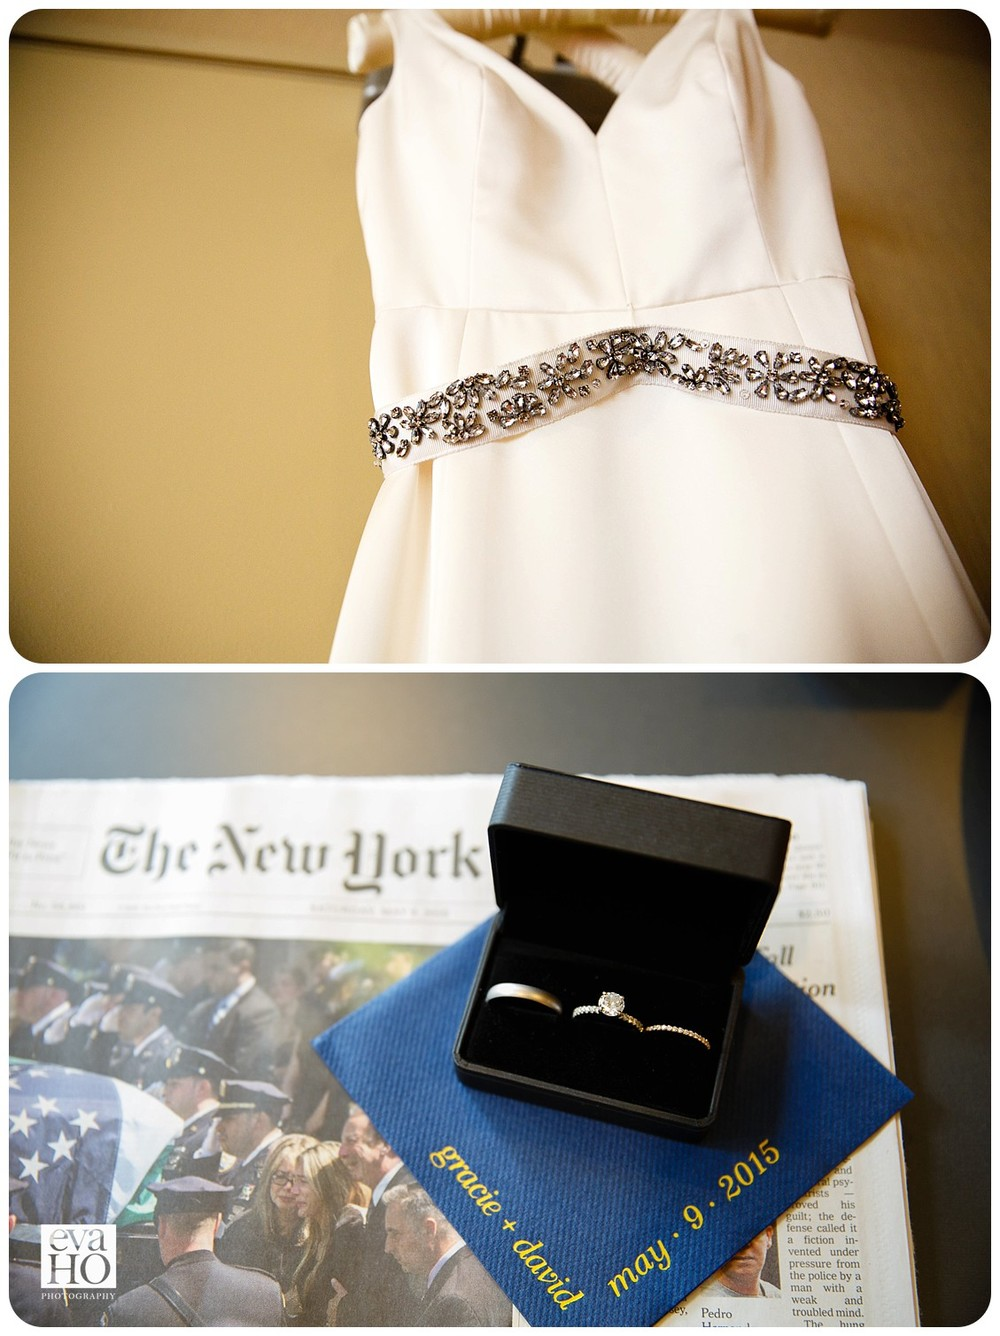 Wedding dress with beautifully beaded belt.  Wedding rings with the New York Times.